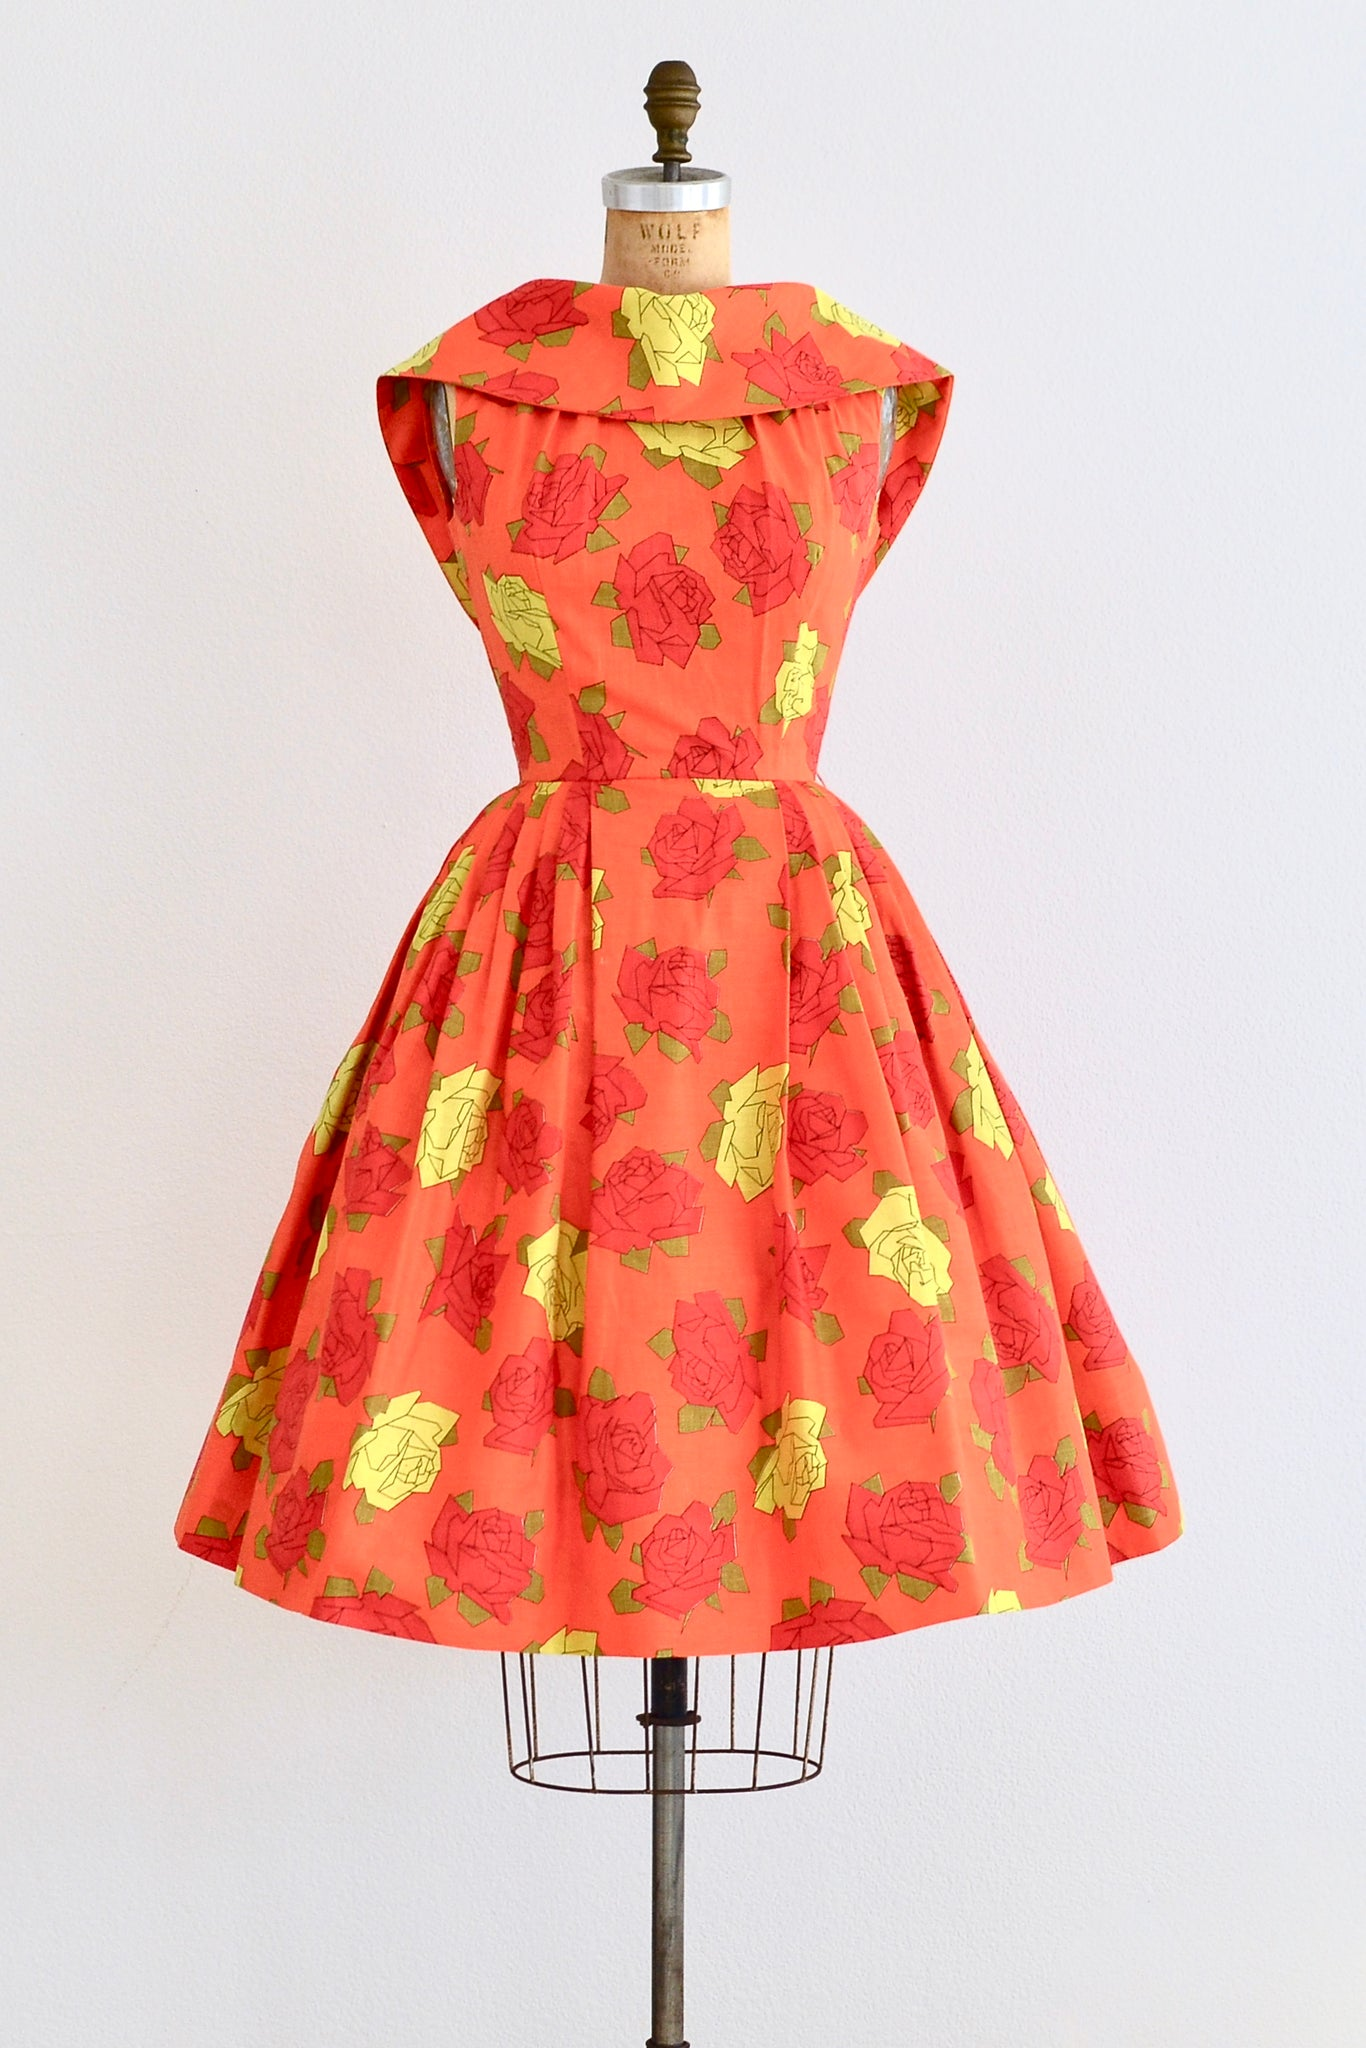 Origami Rose Dress - Pickled Vintage